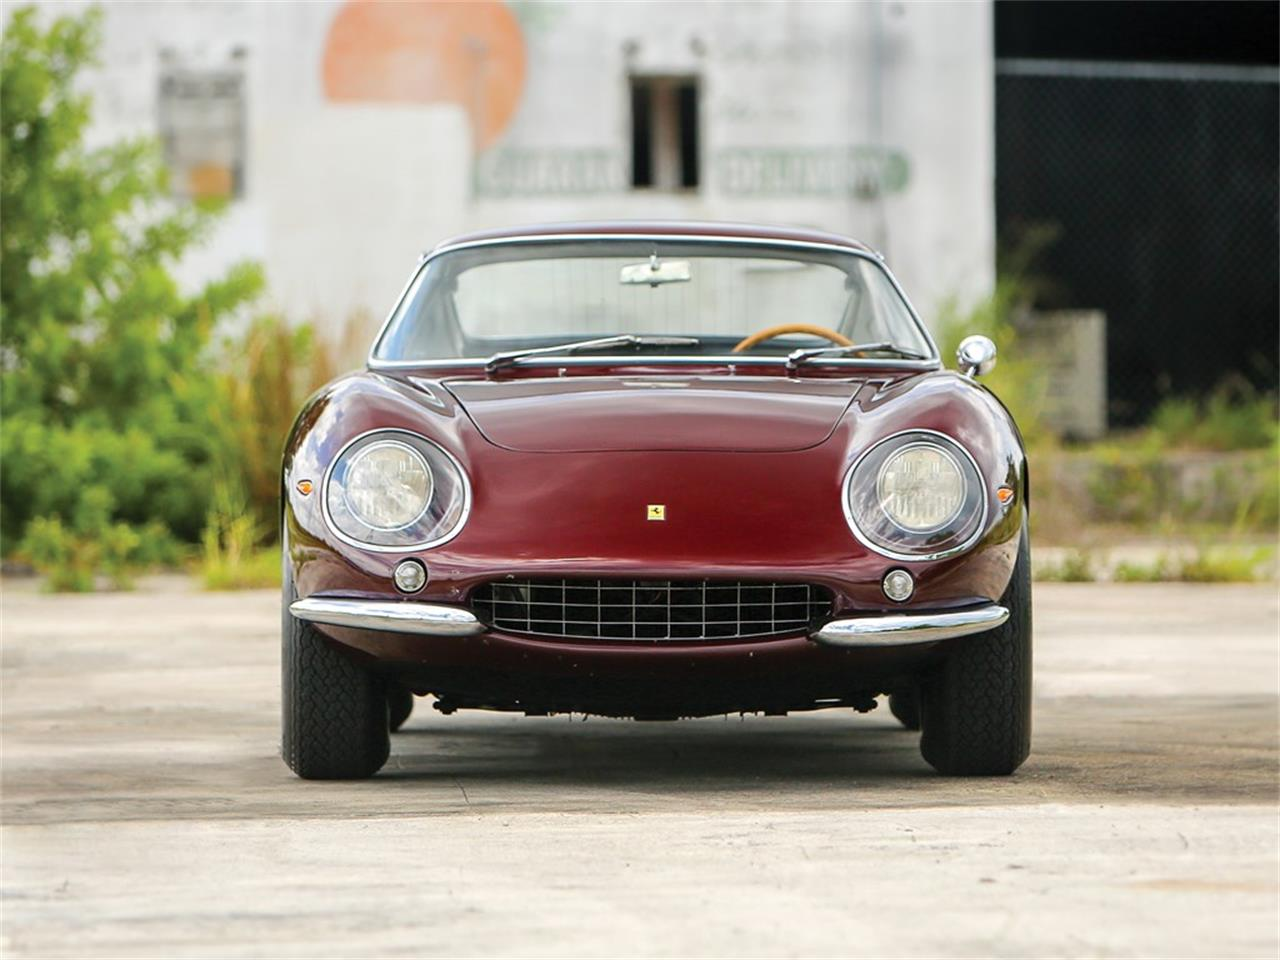 Large Picture of Classic '66 Ferrari 275 GTB Offered by RM Sotheby's - Q20Z